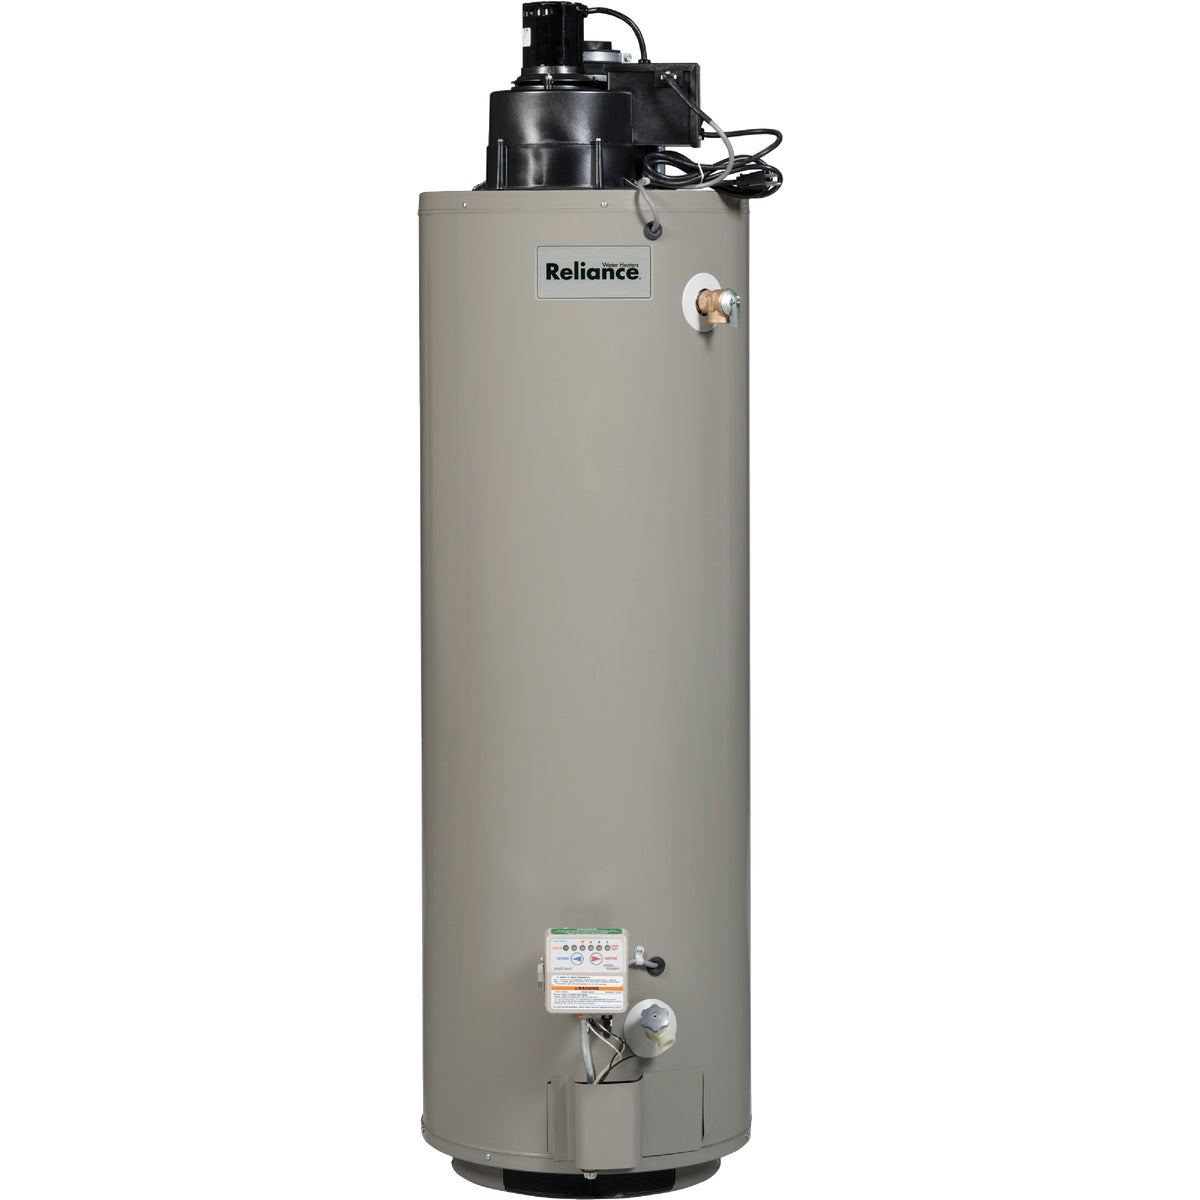 40GAL LP GASPOWER-VENT - 6 40 HRVIT201 by Reliance Added Sales